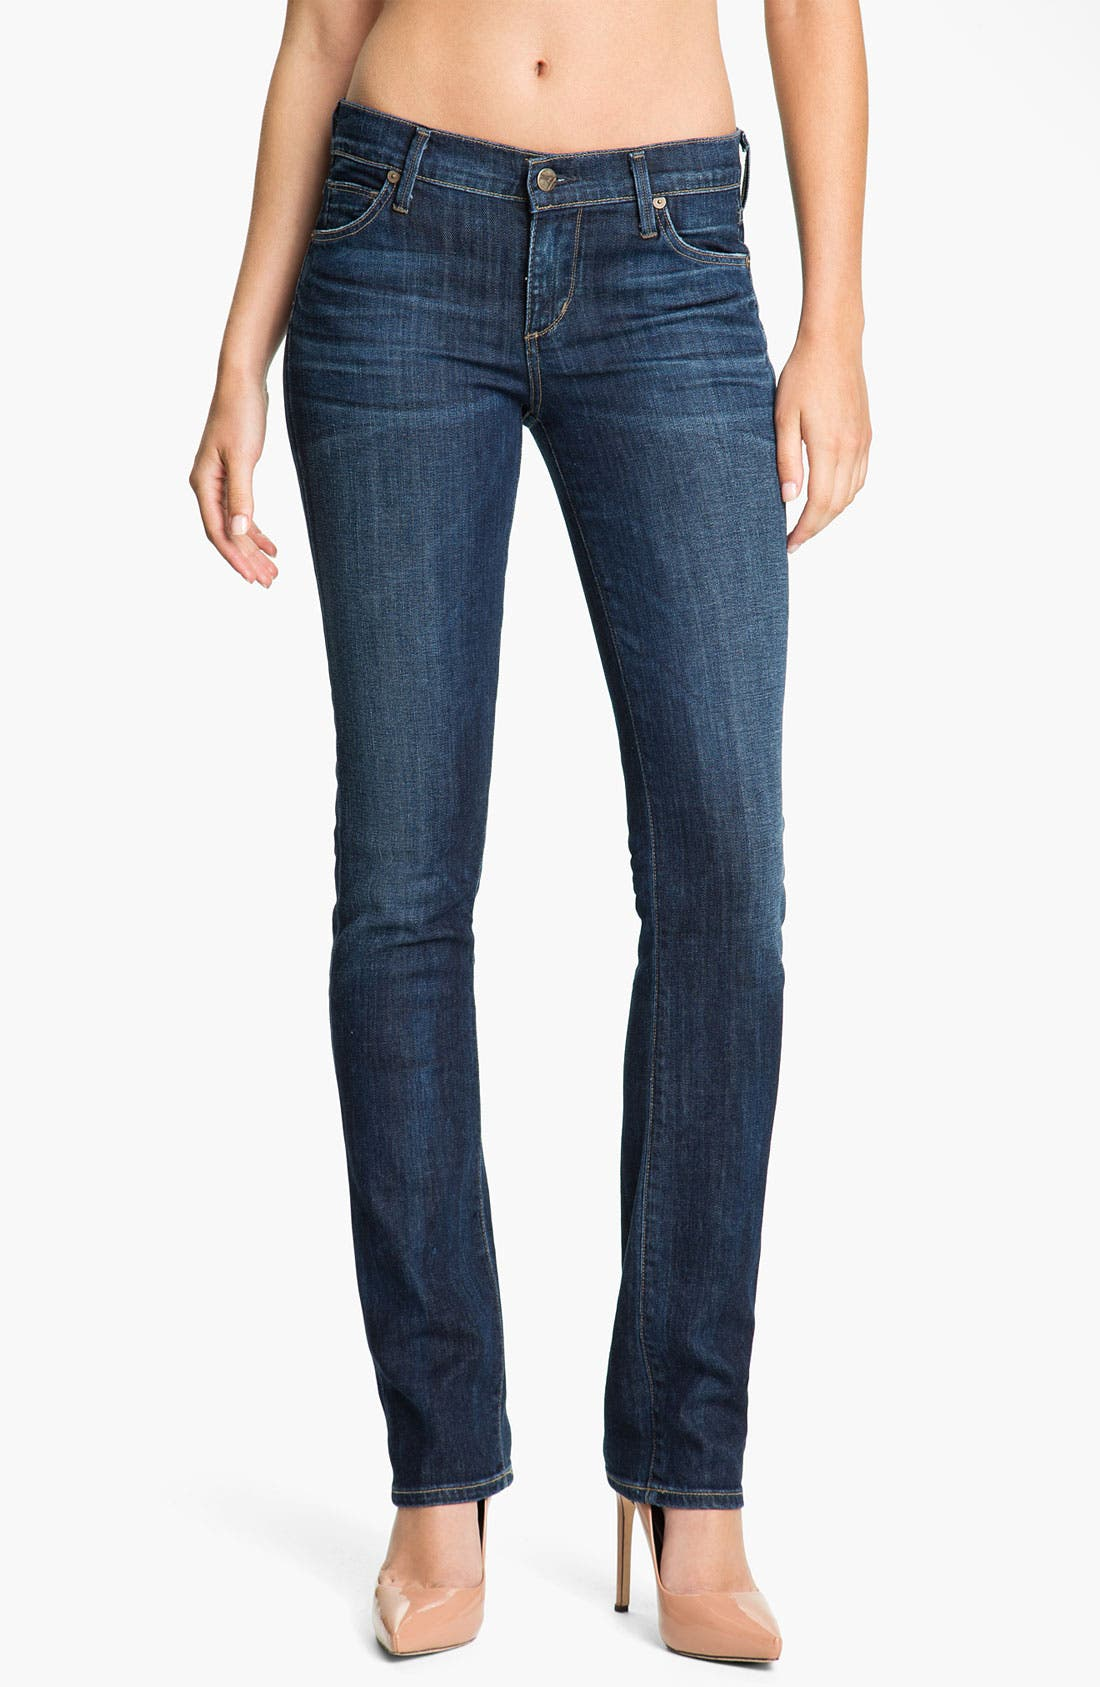 Alternate Image 1 Selected - Citizens of Humanity 'Ava' Straight Leg Stretch Denim Jeans (New Spectrum)